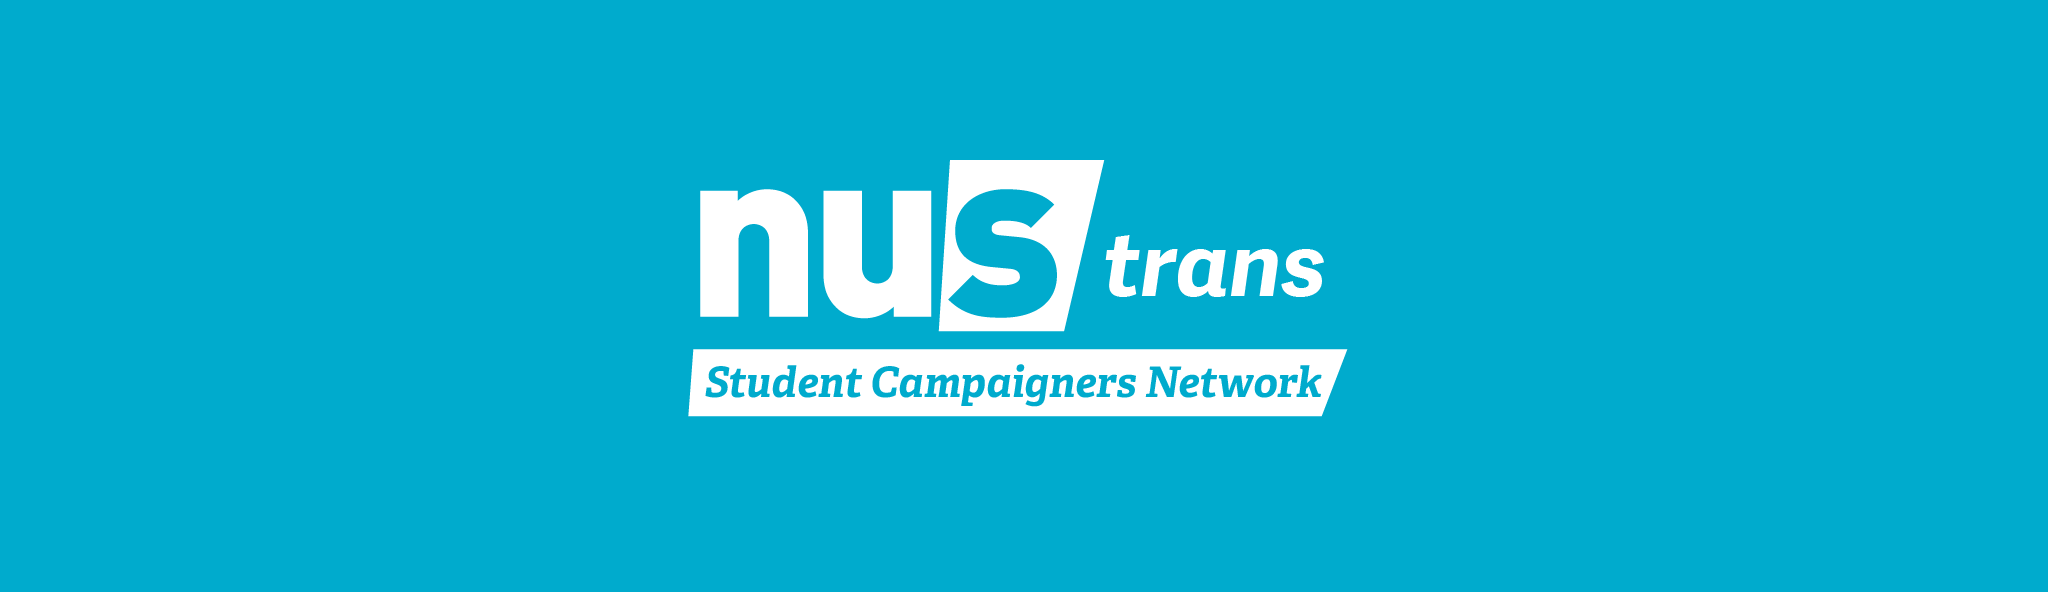 NUS Trans Student Campaigners Network